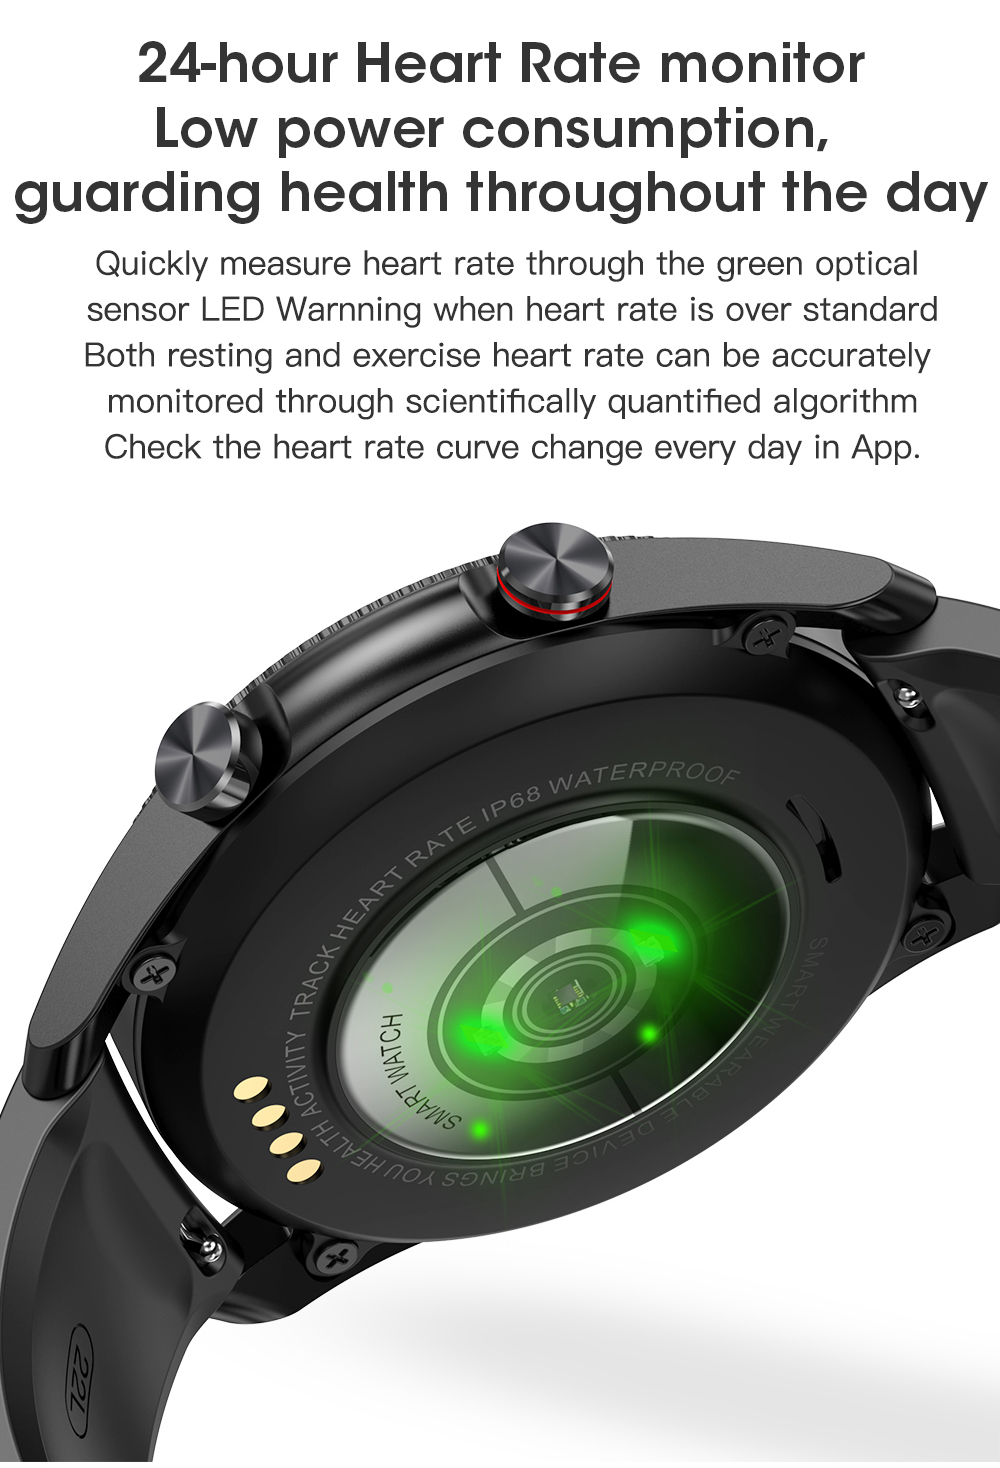 He14bdbbdc3d84facb85eb99da1986050J Timewolf Smart Watch Men 2021 IP68 Waterproof Android Full Touch Sports Smartwatch Bluetooth Call For Samsung Huawei Android IOS